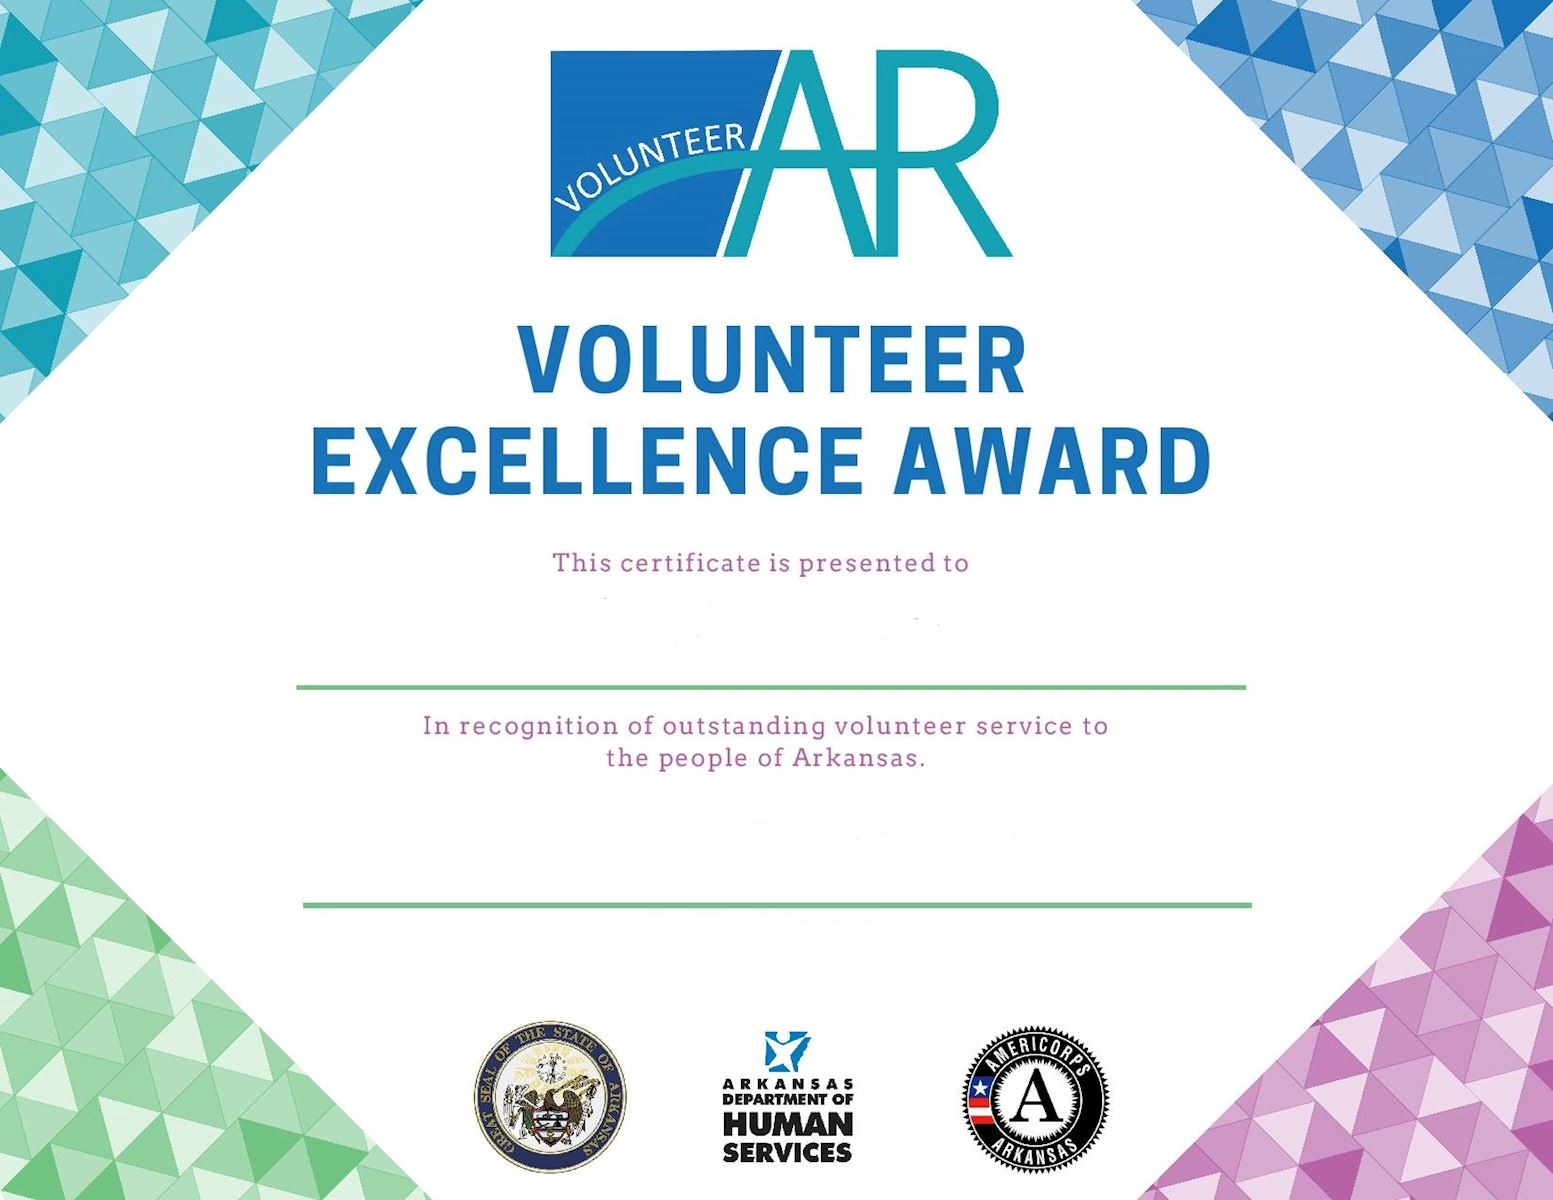 volunteerar recognition events